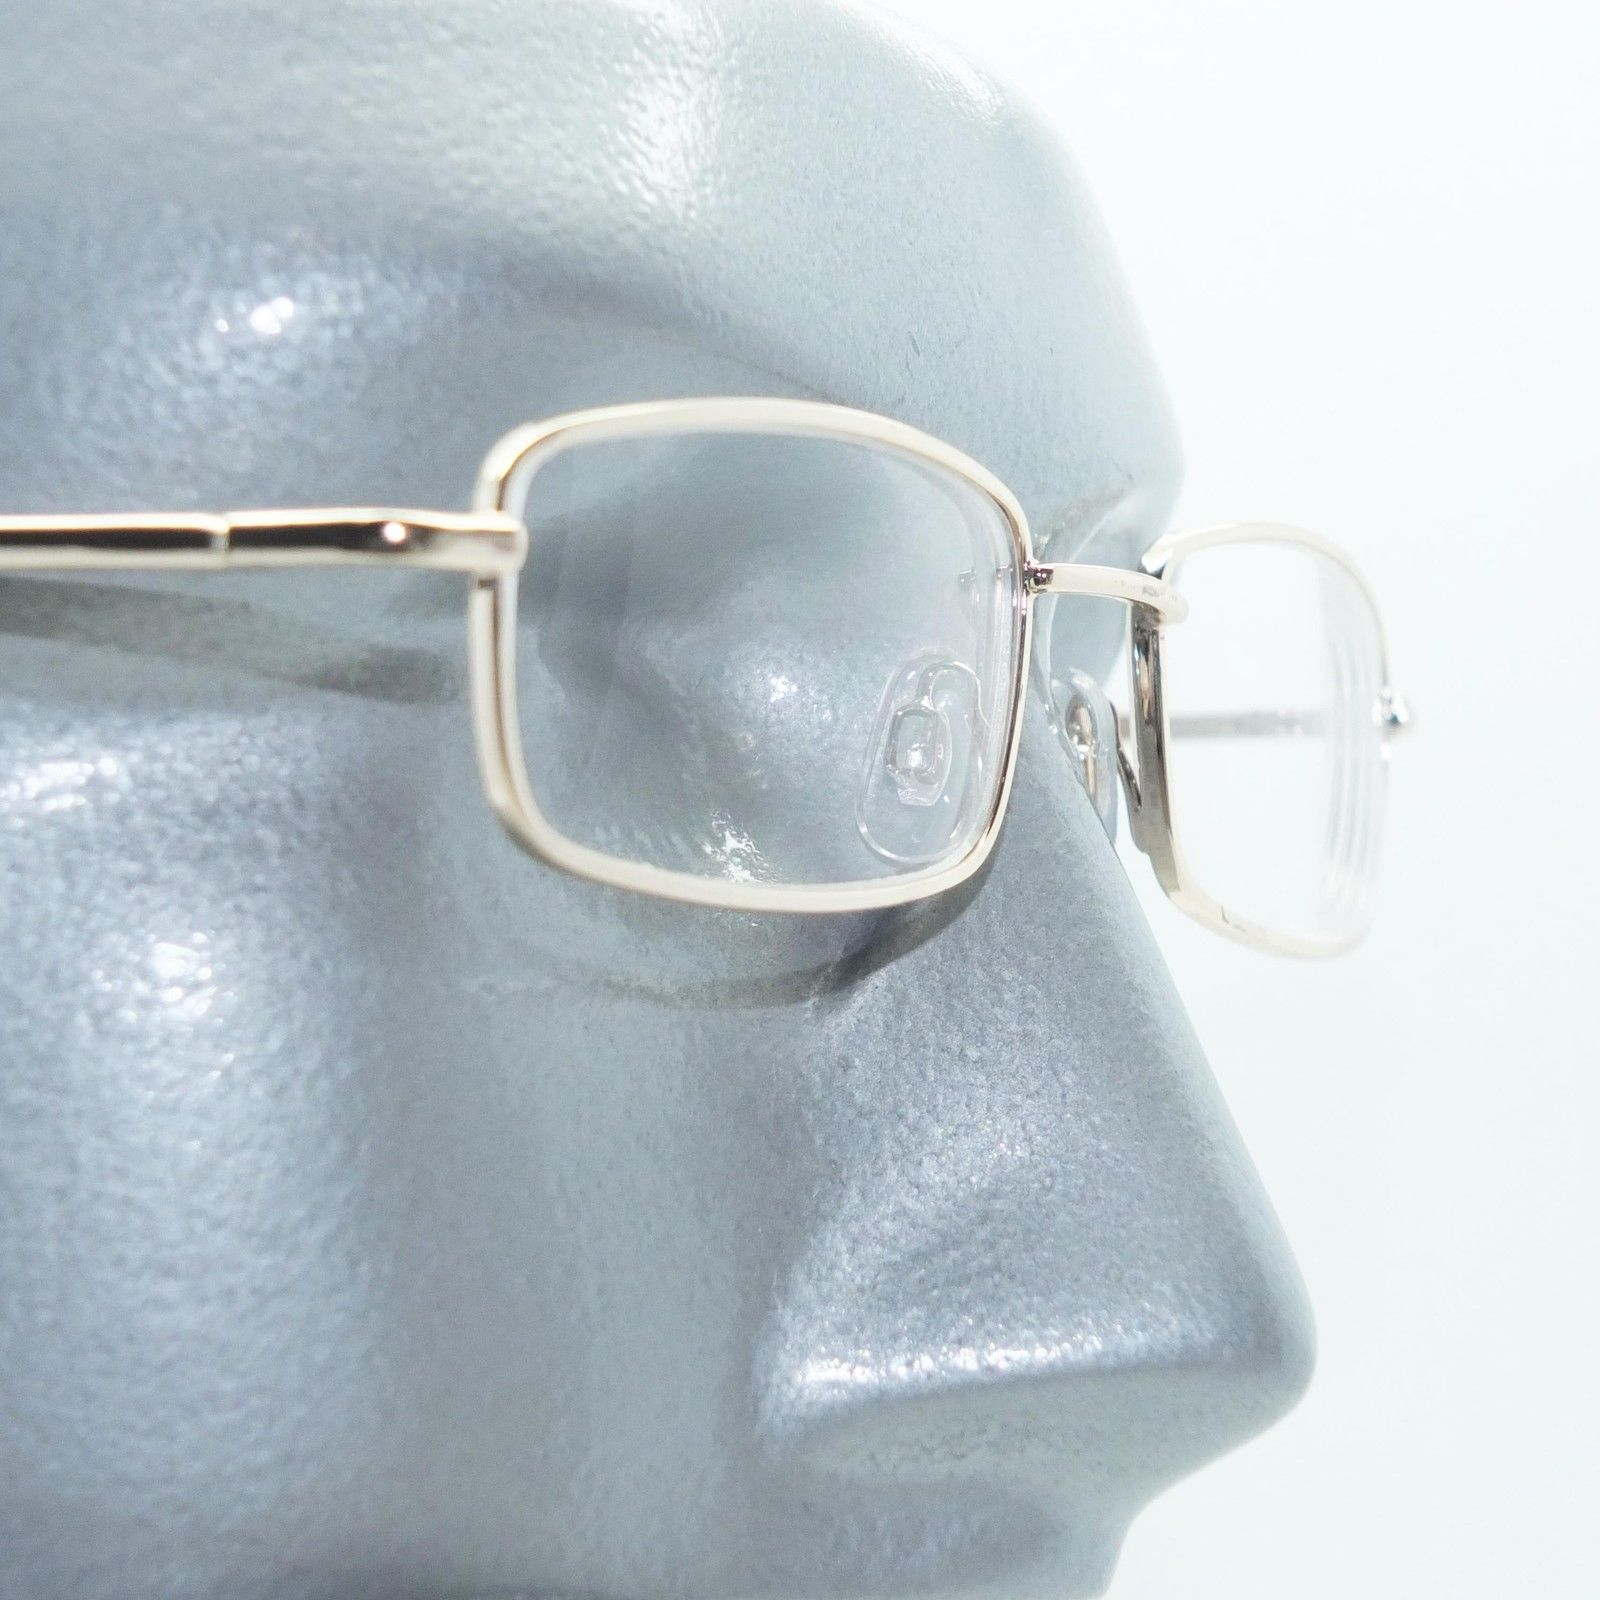 Primary image for Nearsighted Farsighted Reading Glasses Myopic Presbyopic Gold Minus -3.00 Lens